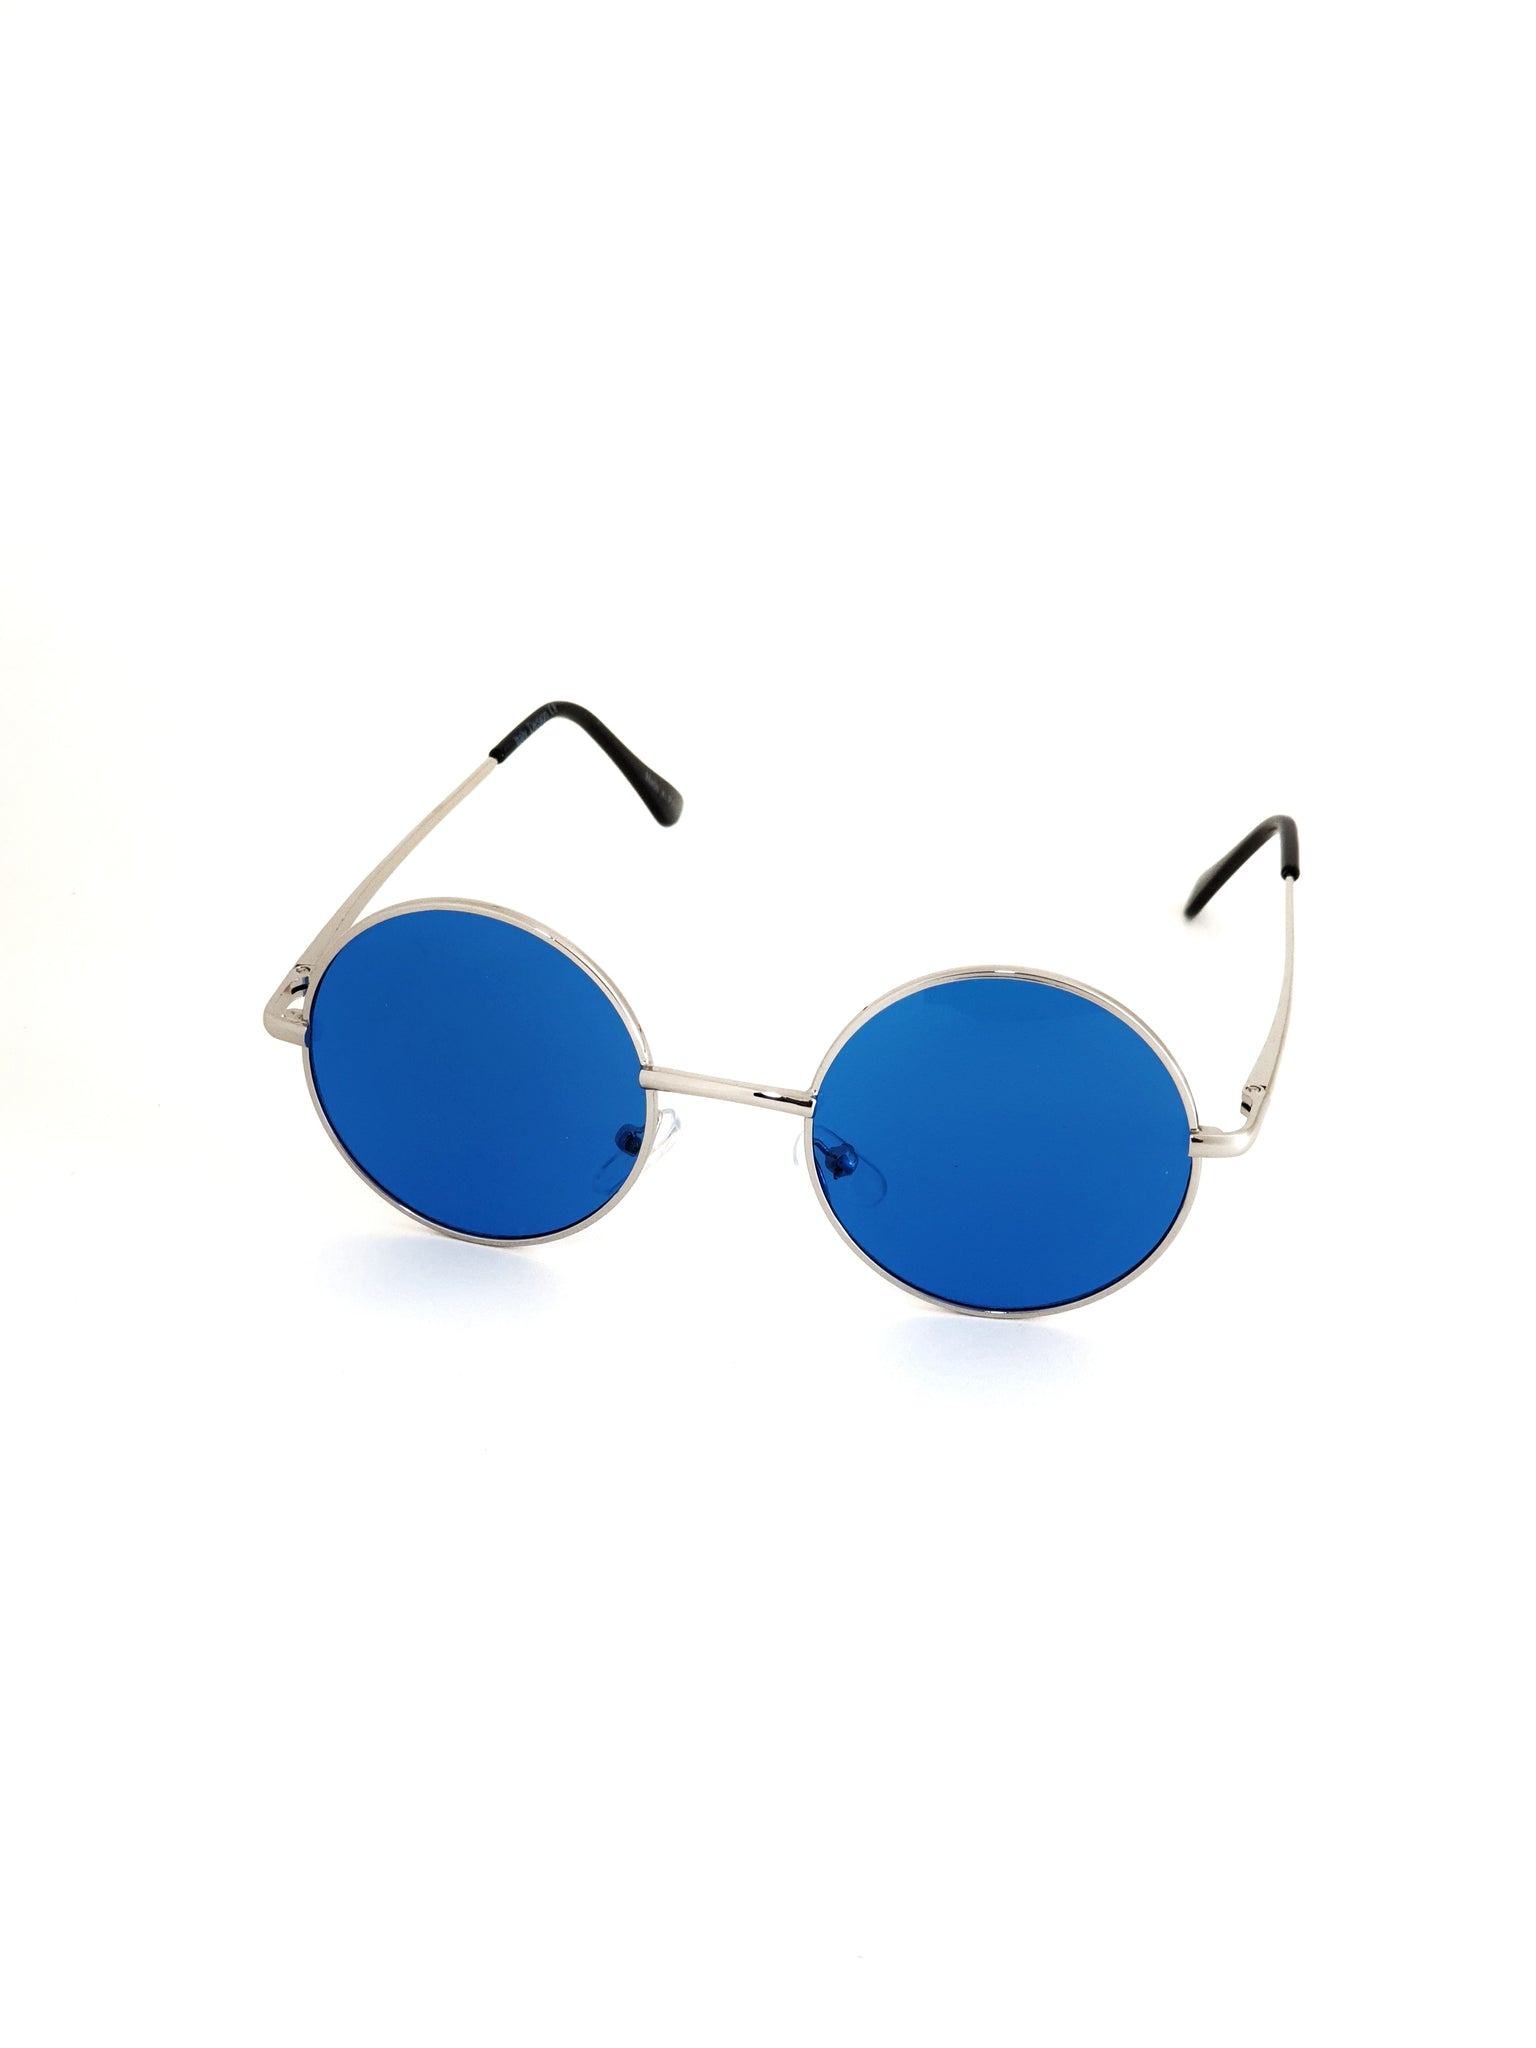 Retro Circle Sunglasses - Blue